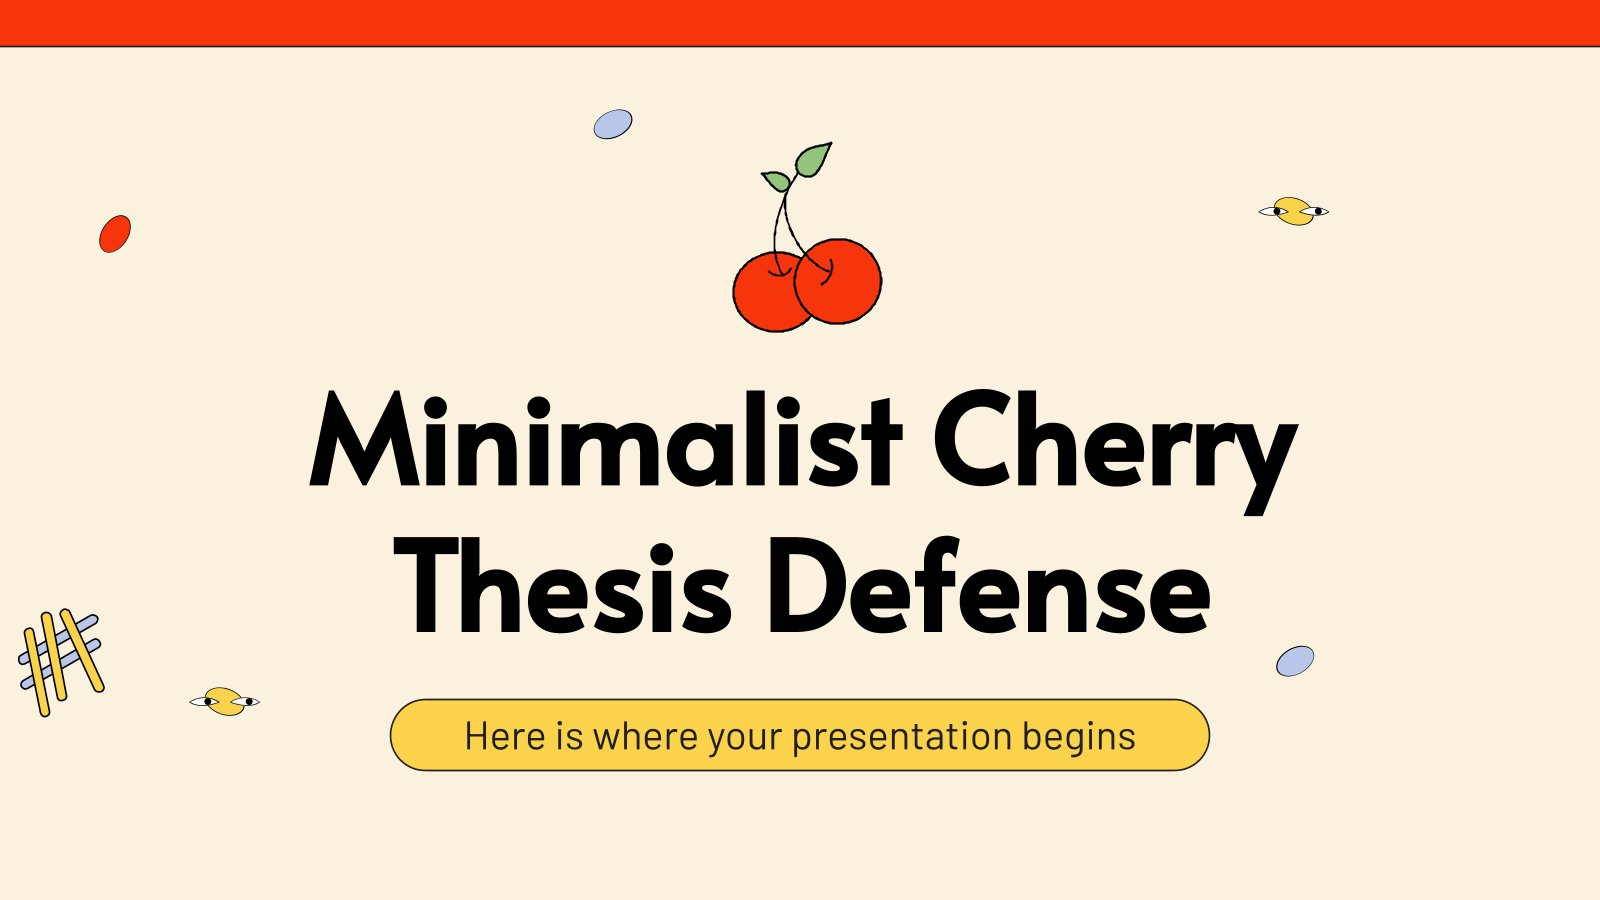 Minimalist Cherry Thesis Defense presentation template